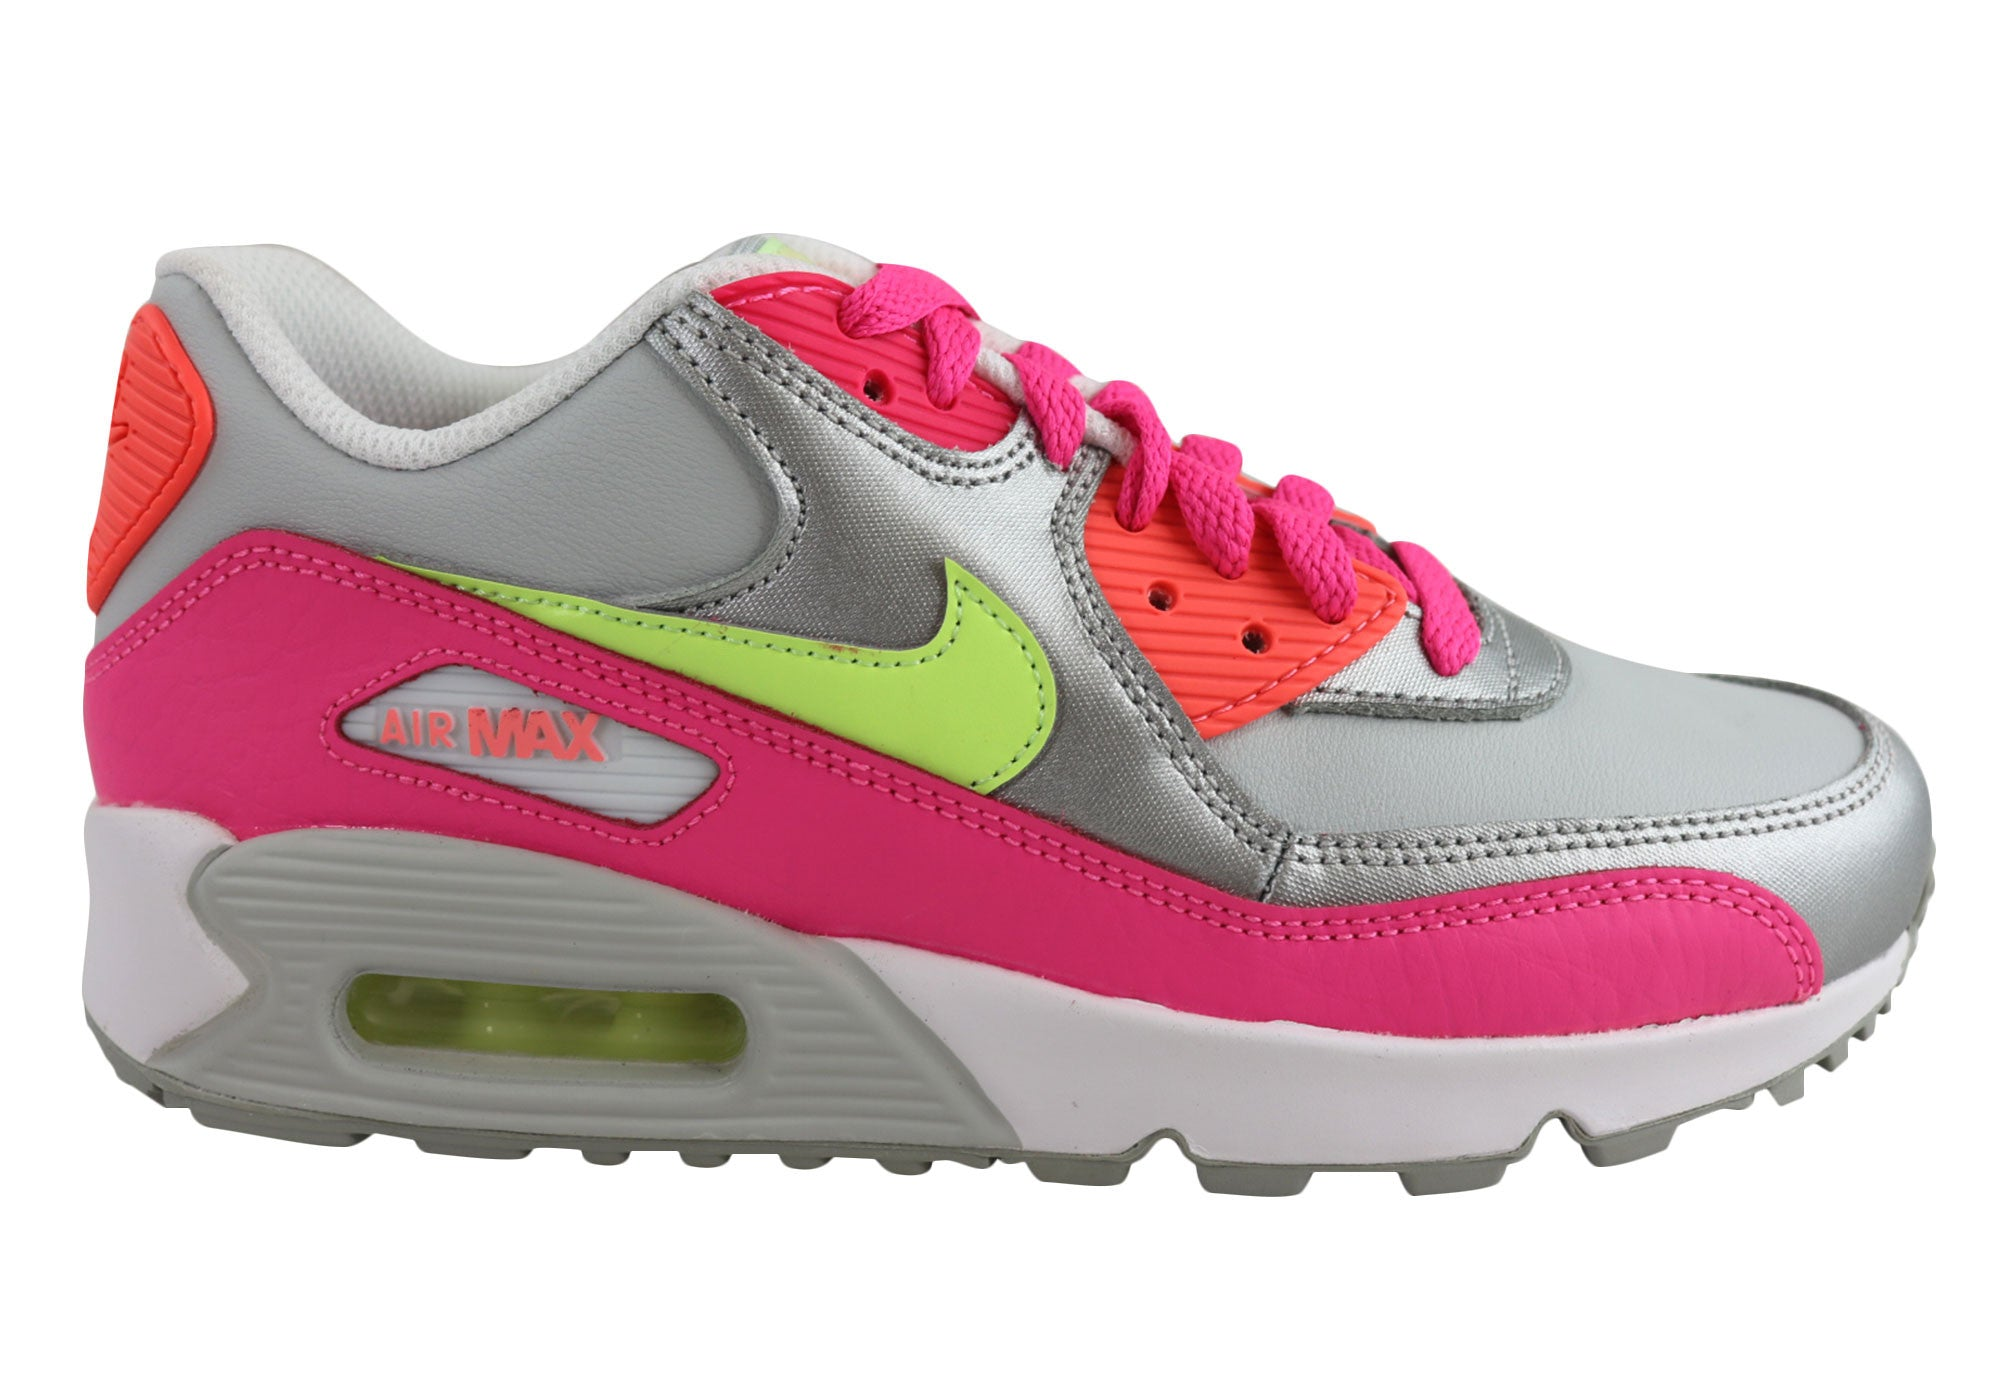 Nike Air Max 90 Premium Mesh (GS) Older Kids Girls Sport